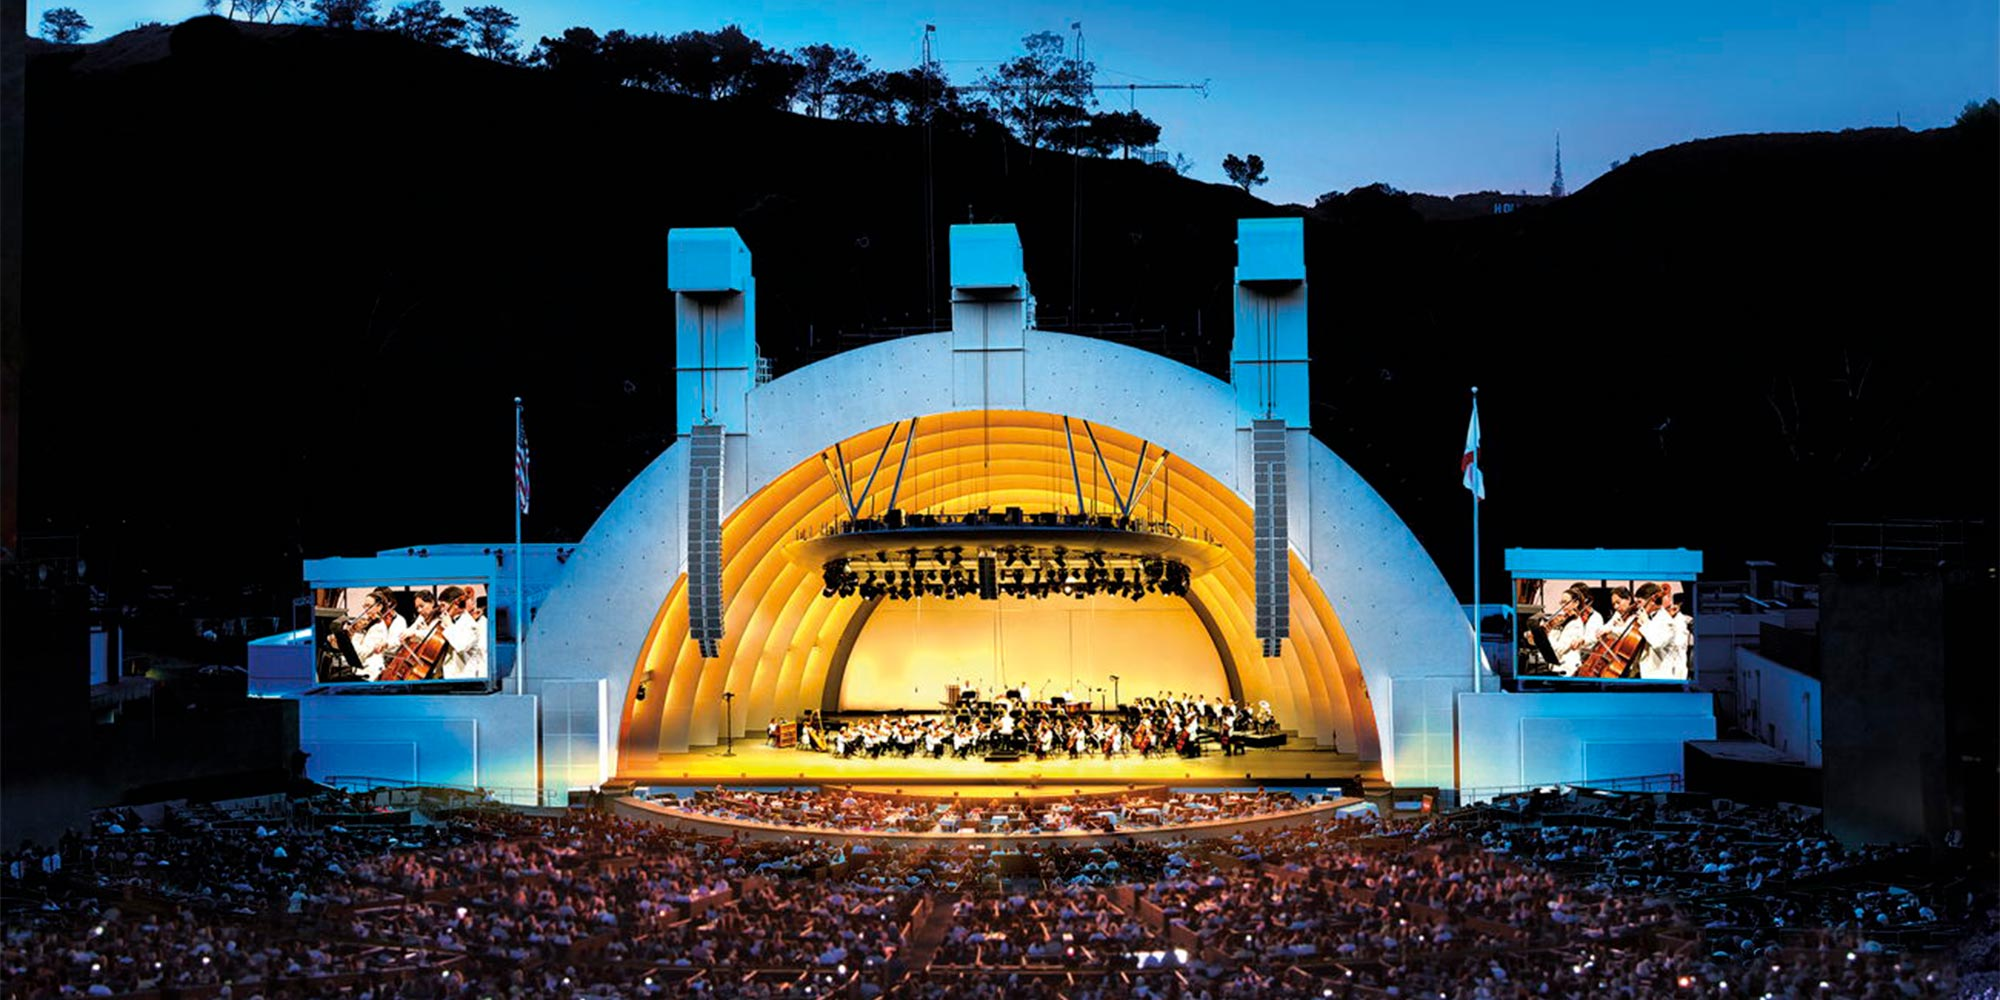 Historic amphitheater Hollywood Bowl for live music in Los Angeles, California.